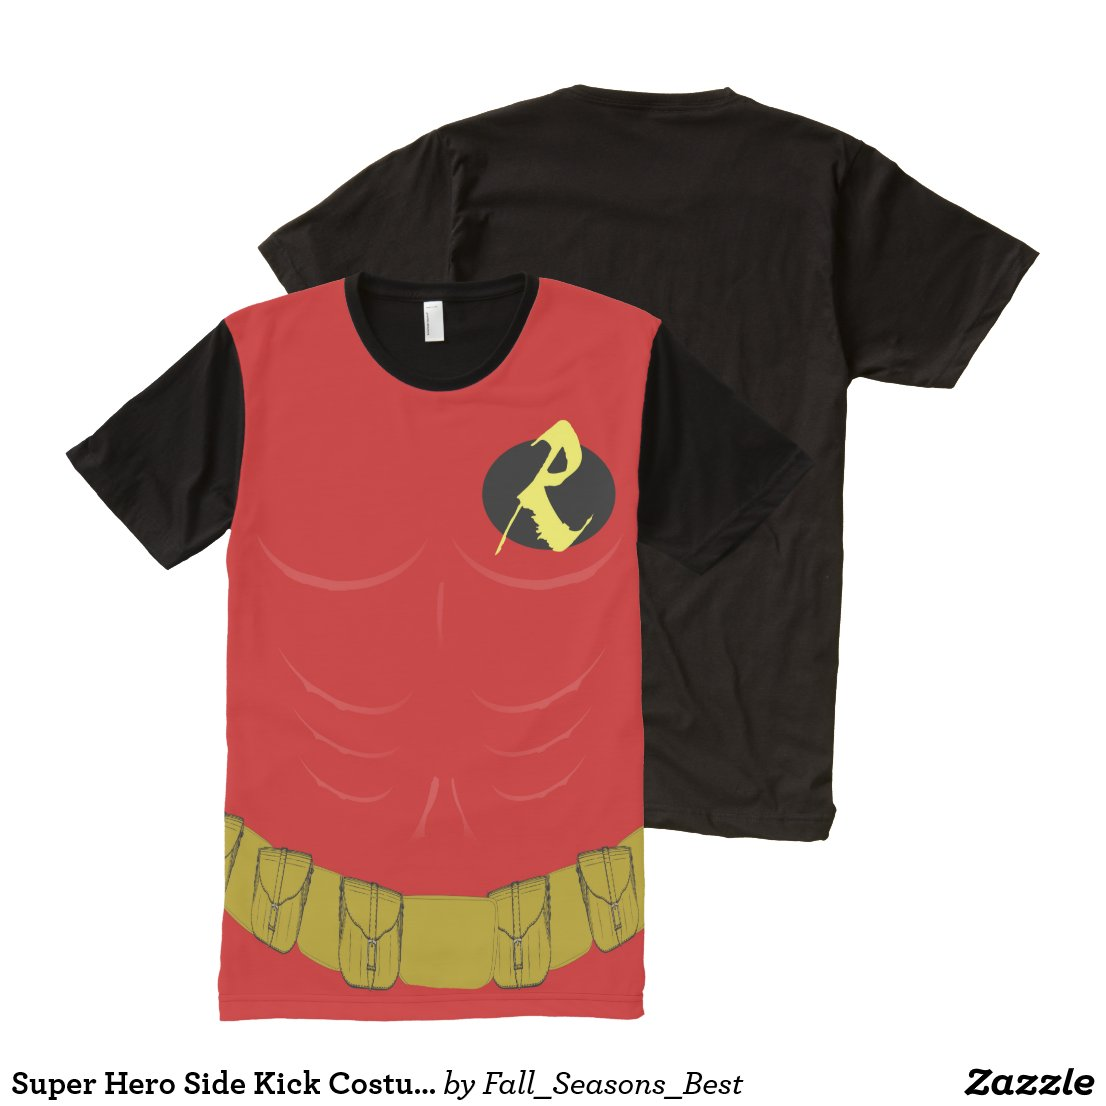 Super Hero Side Kick Costume All-Over-Print T-Shirt